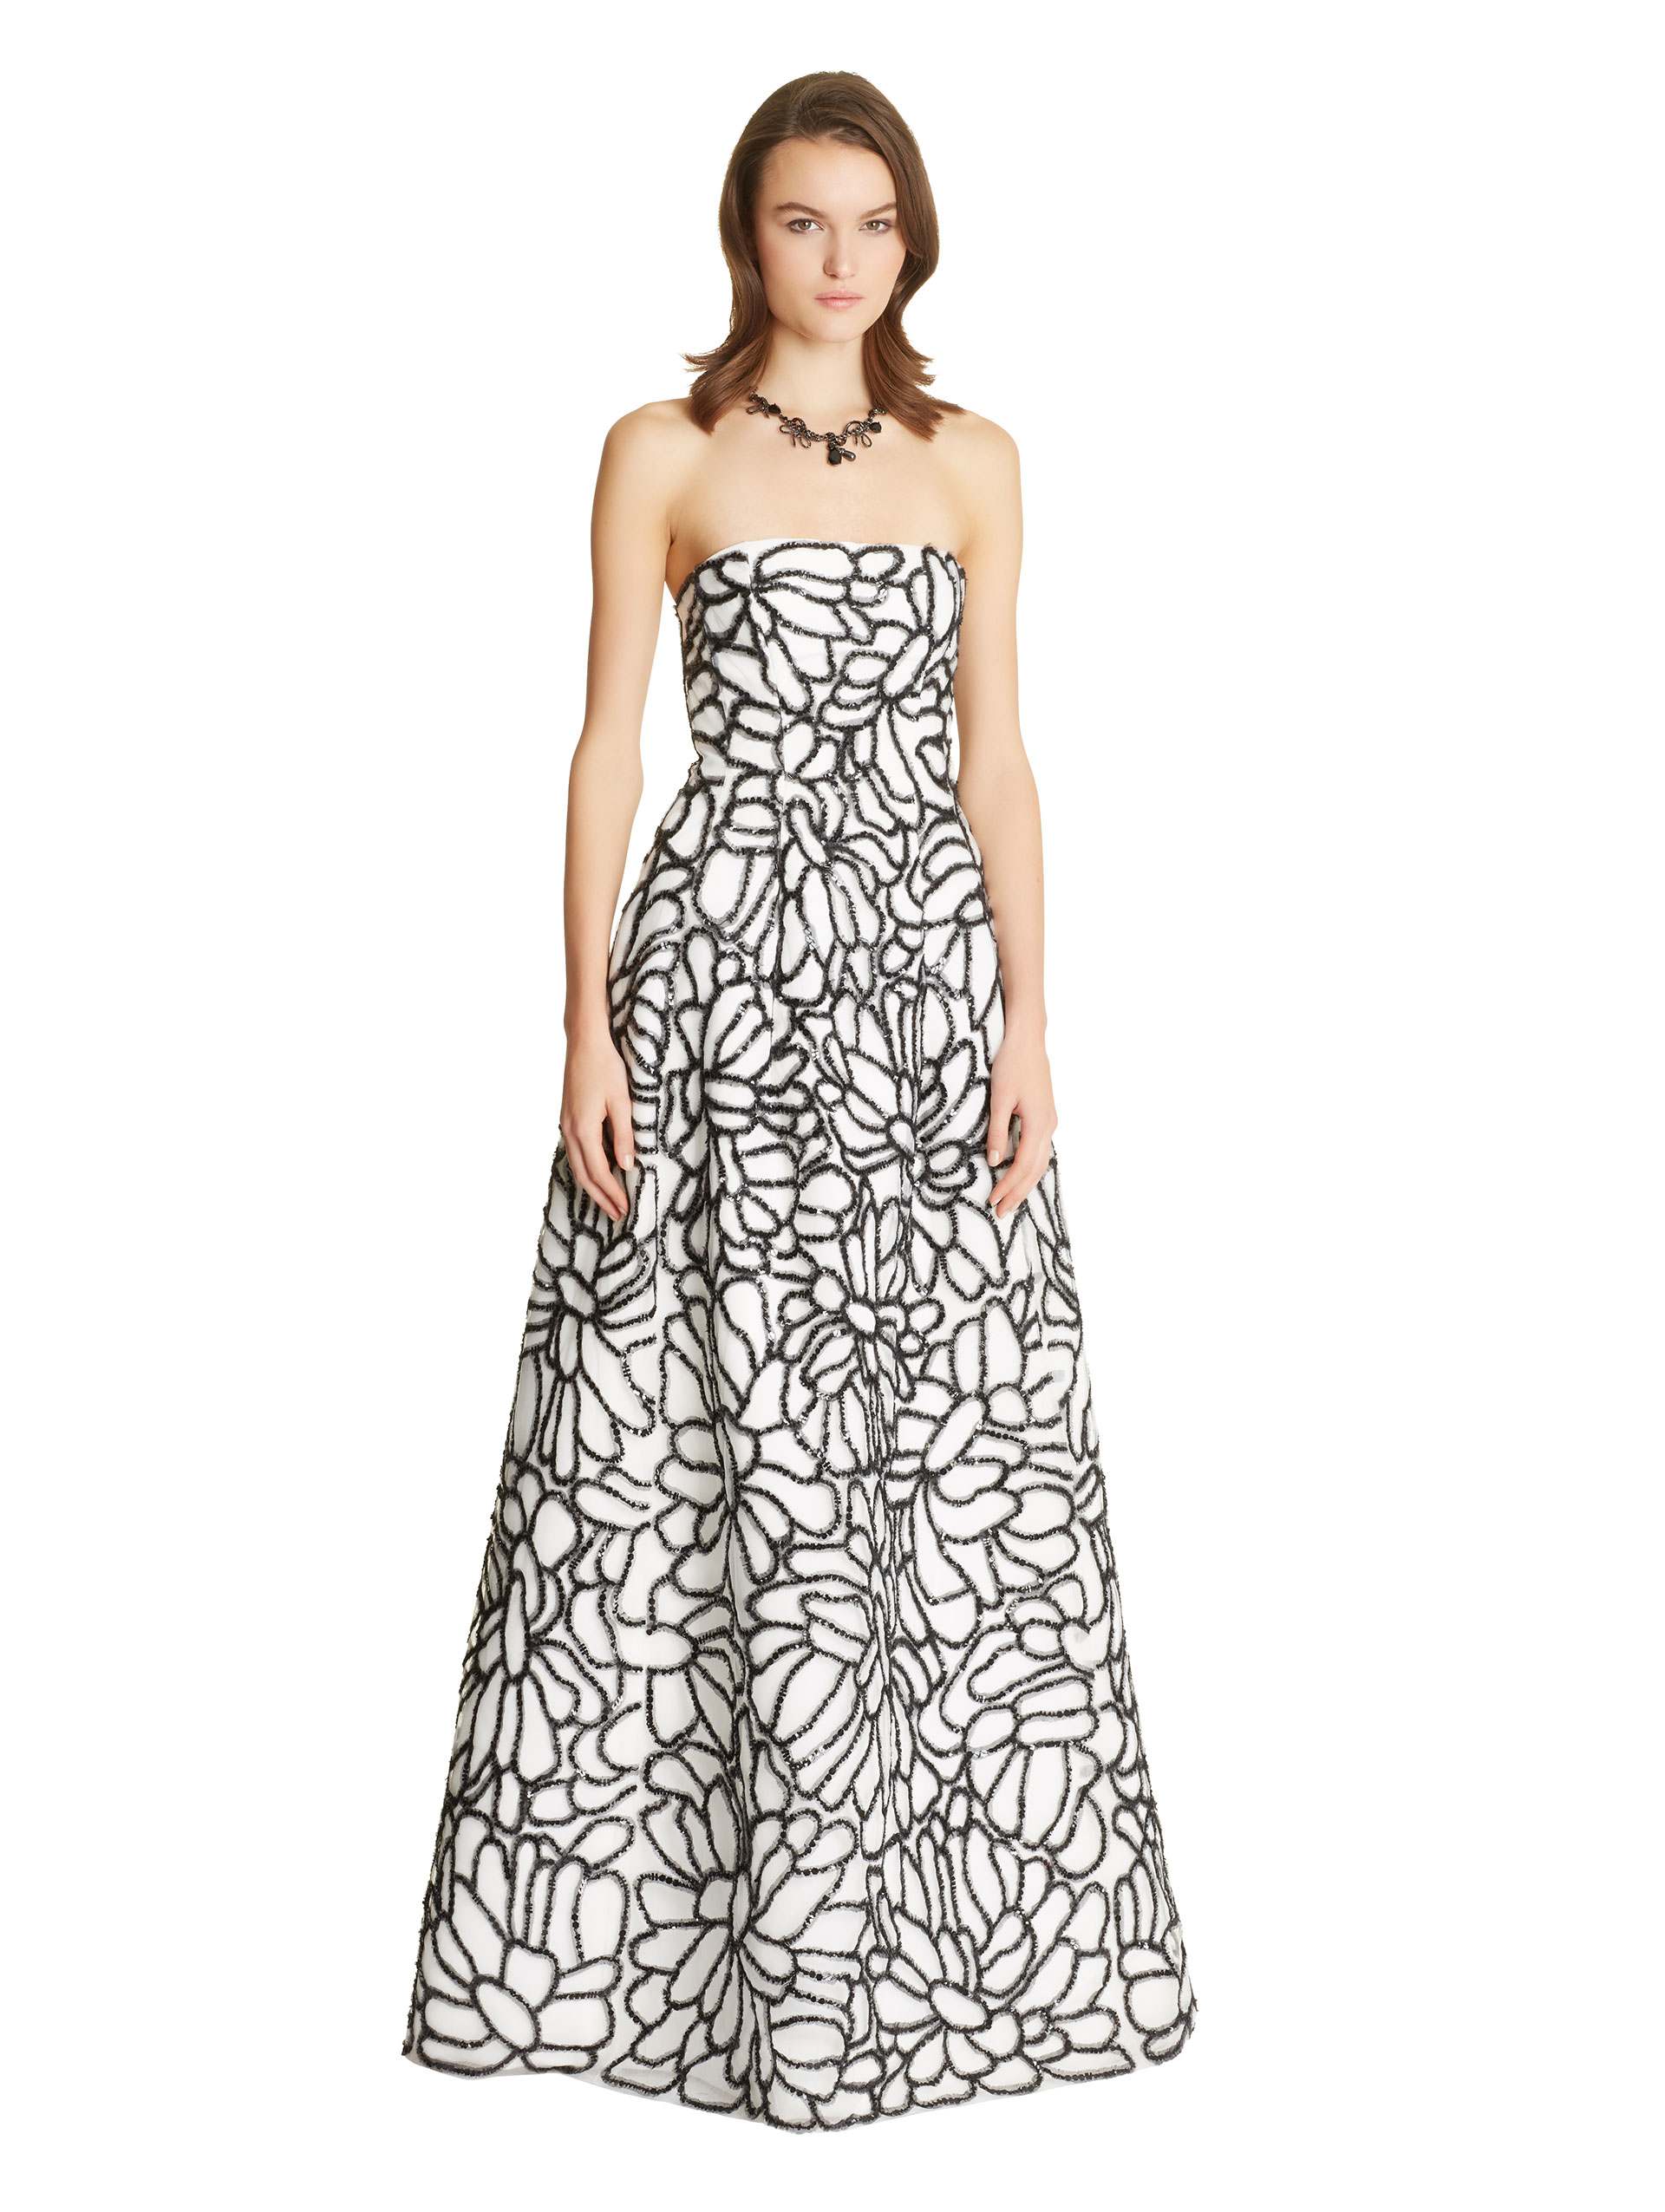 3bb8d61664 Lyst - Oscar de la Renta Floral Embroidered Tulle   Silk Faille Gown